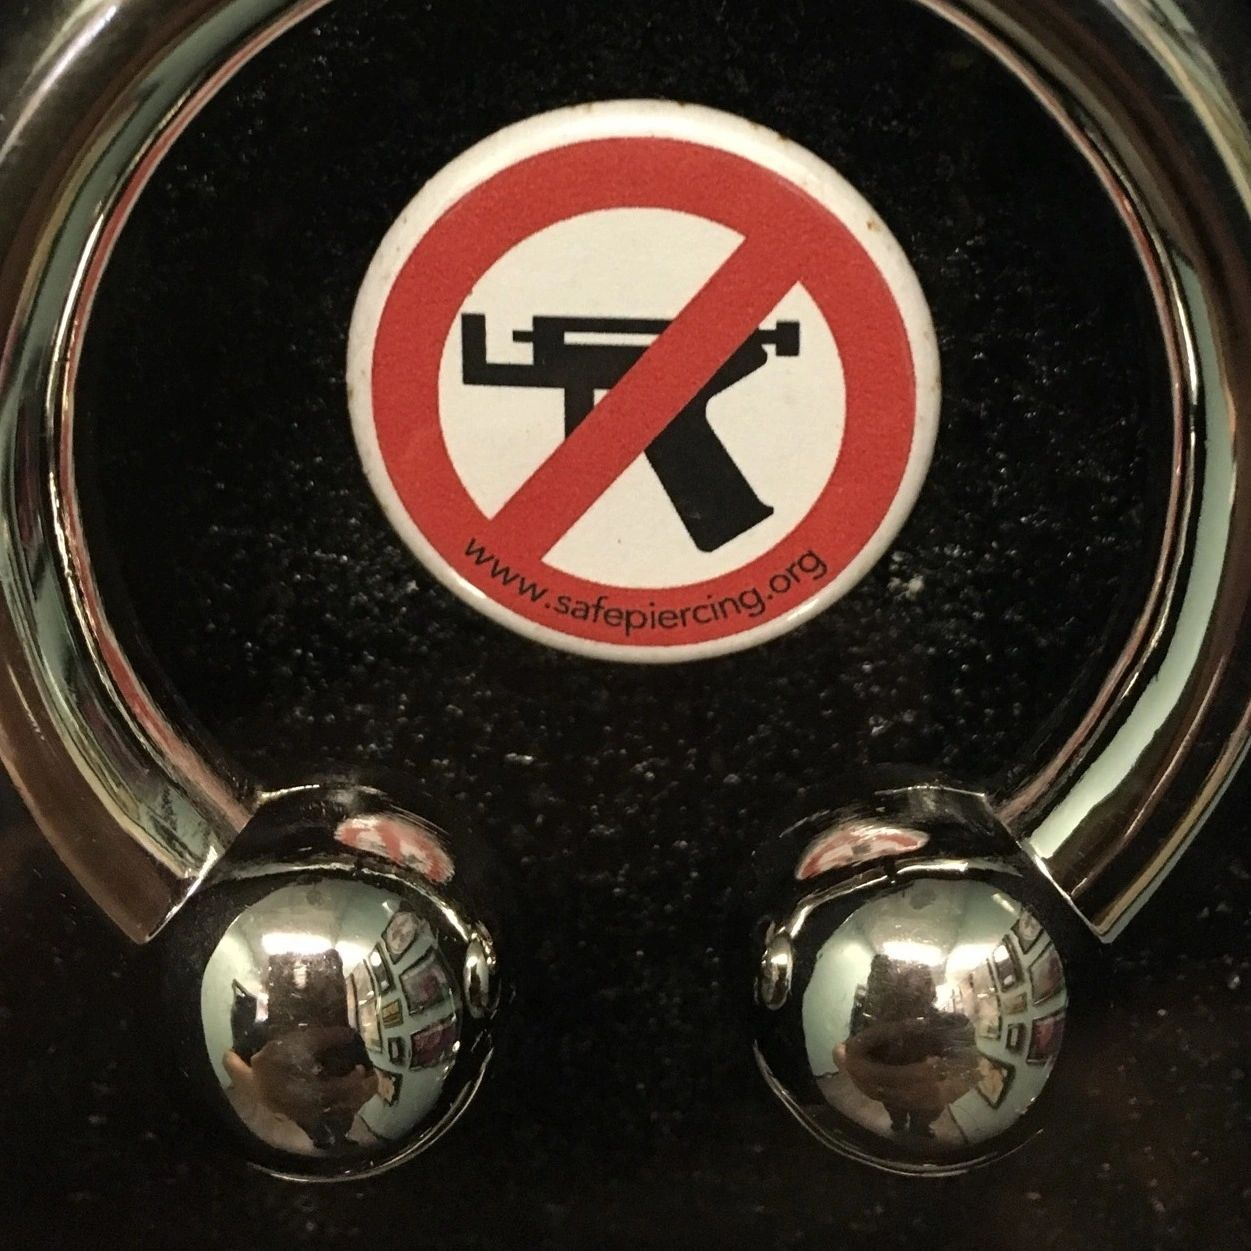 piercing guns are NEVER appropriate to use on any part of the body. .